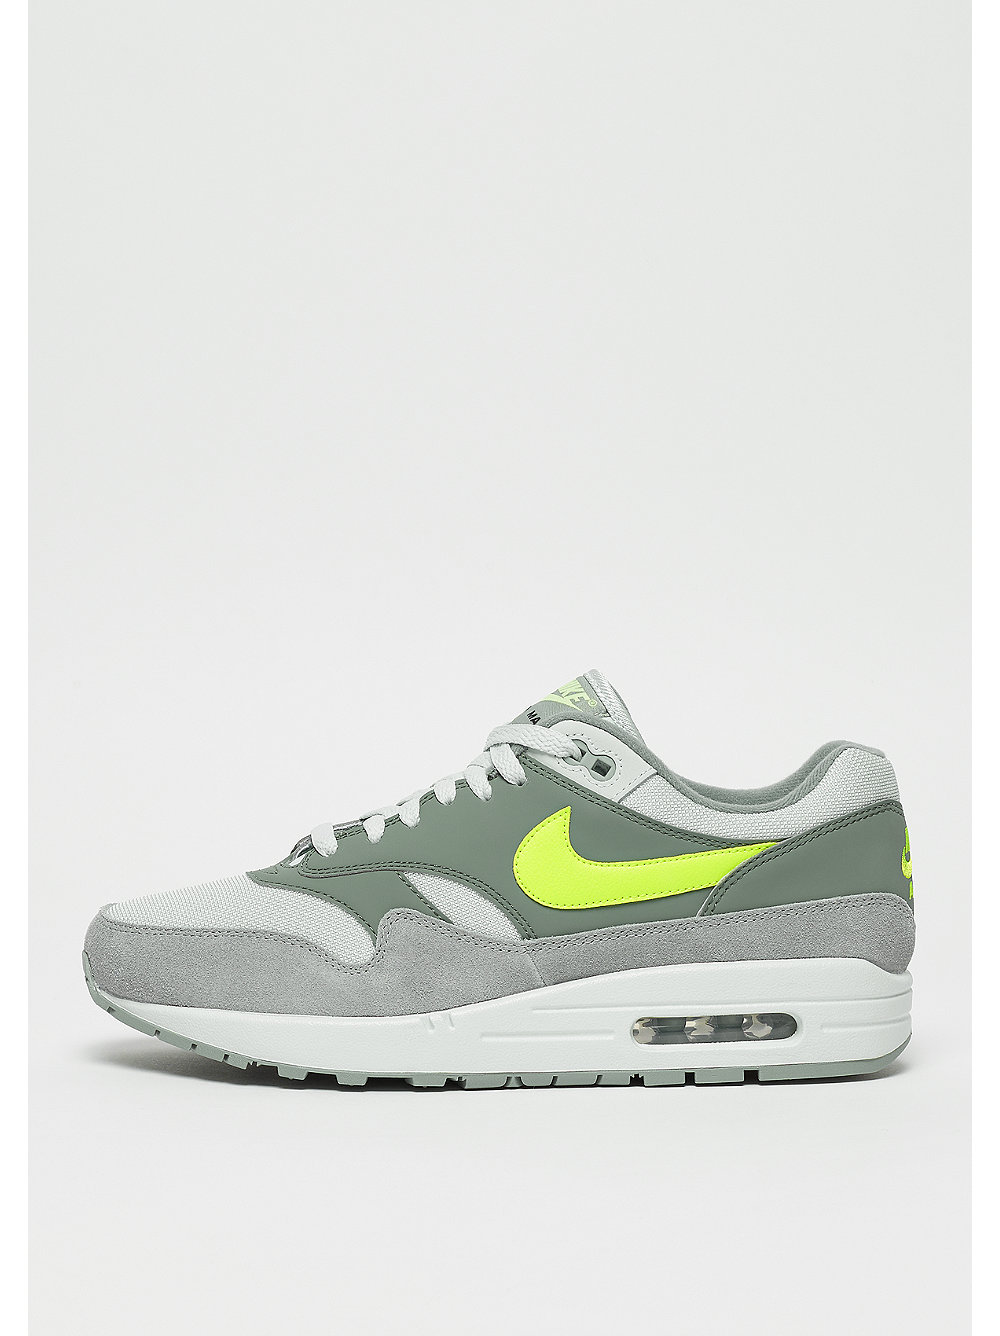 nike air max 1 mica green